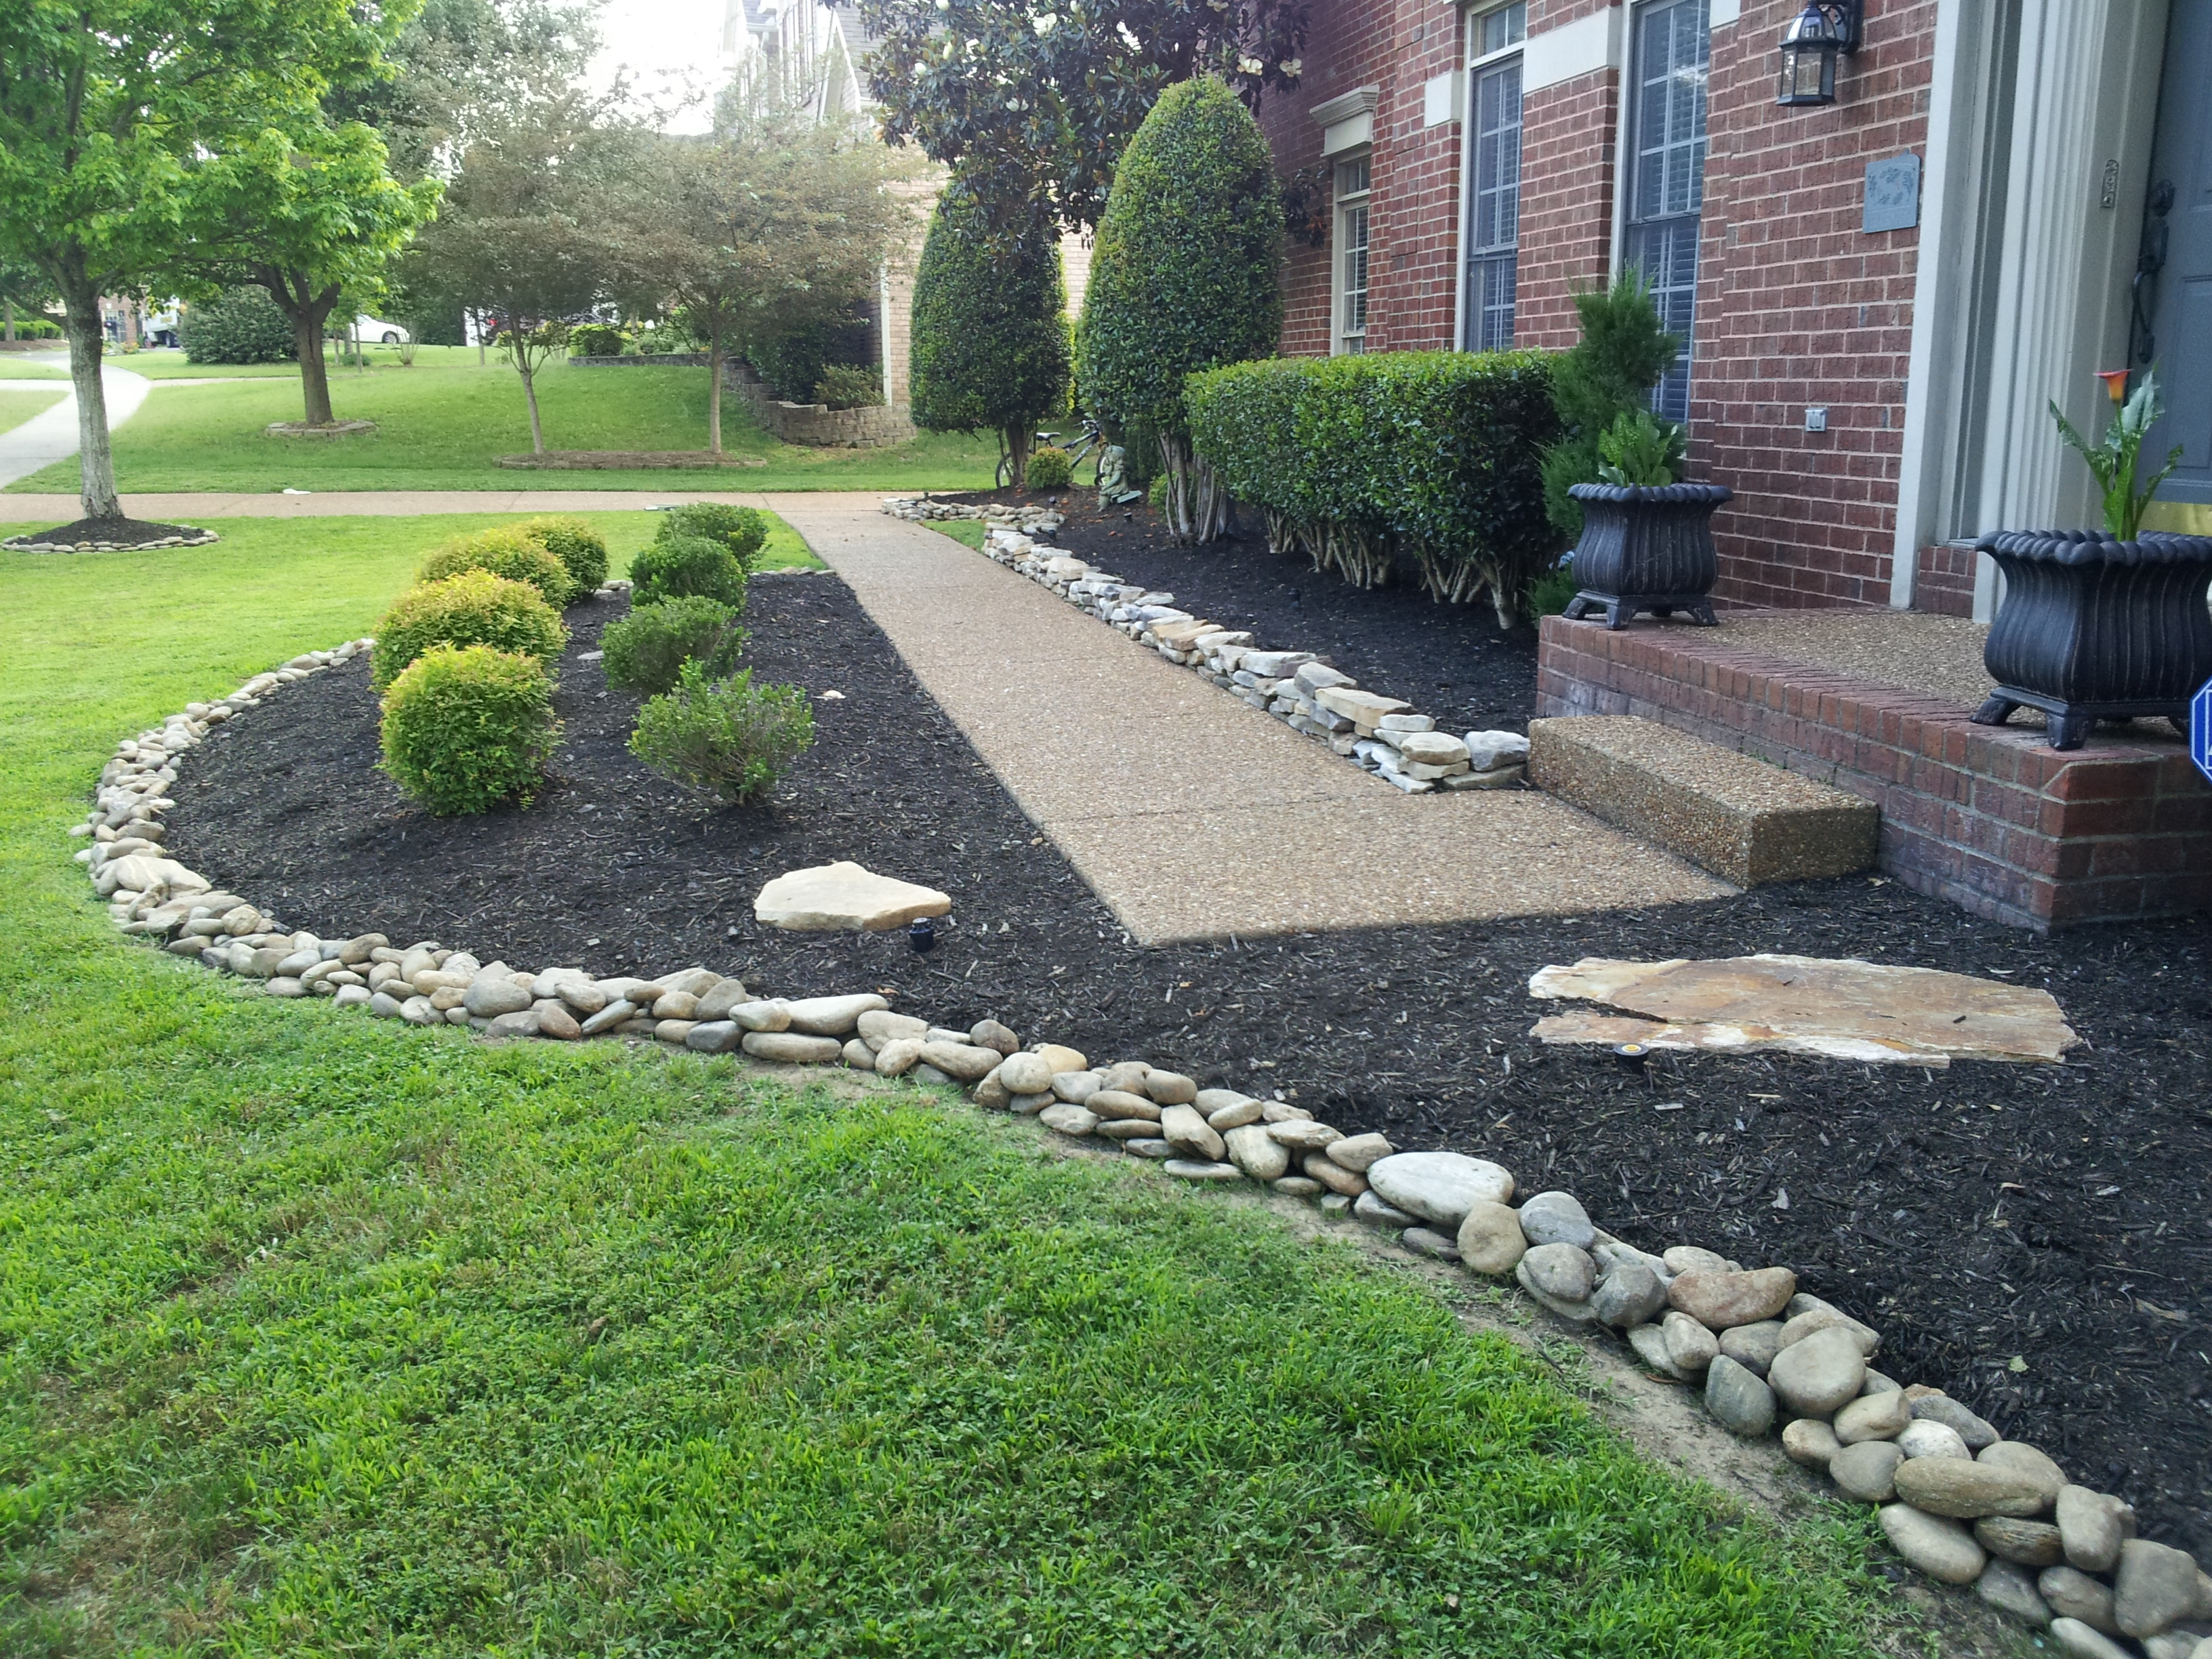 Ordinaire Stone And Rocks For Landscaping